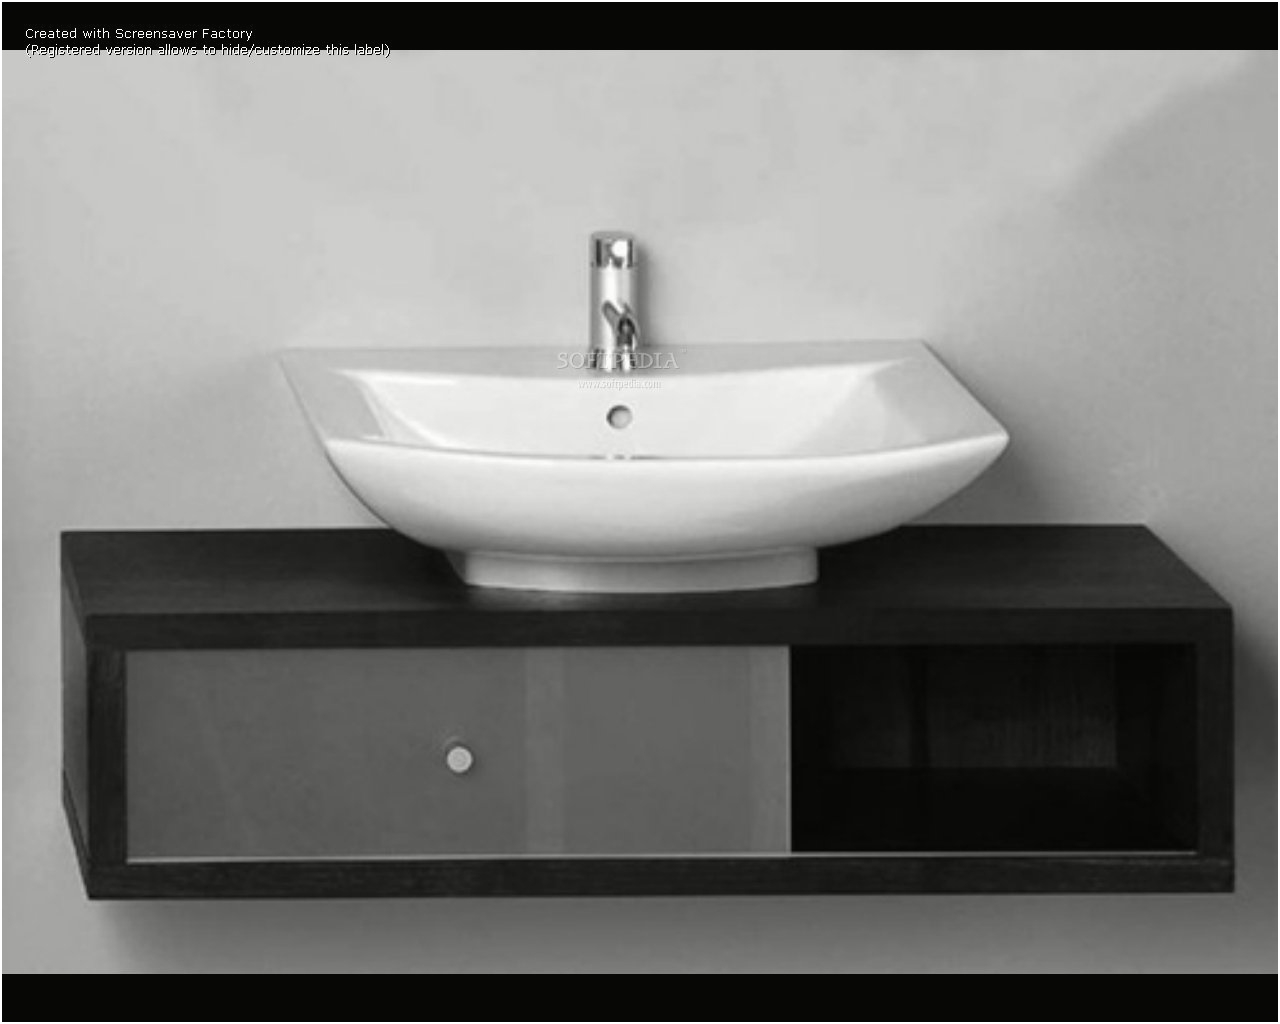 Modern Best Of Tiny Sinks For Small Bathrooms | Bathroom Design Gallery throughout Review Small Sinks For Small Bathrooms